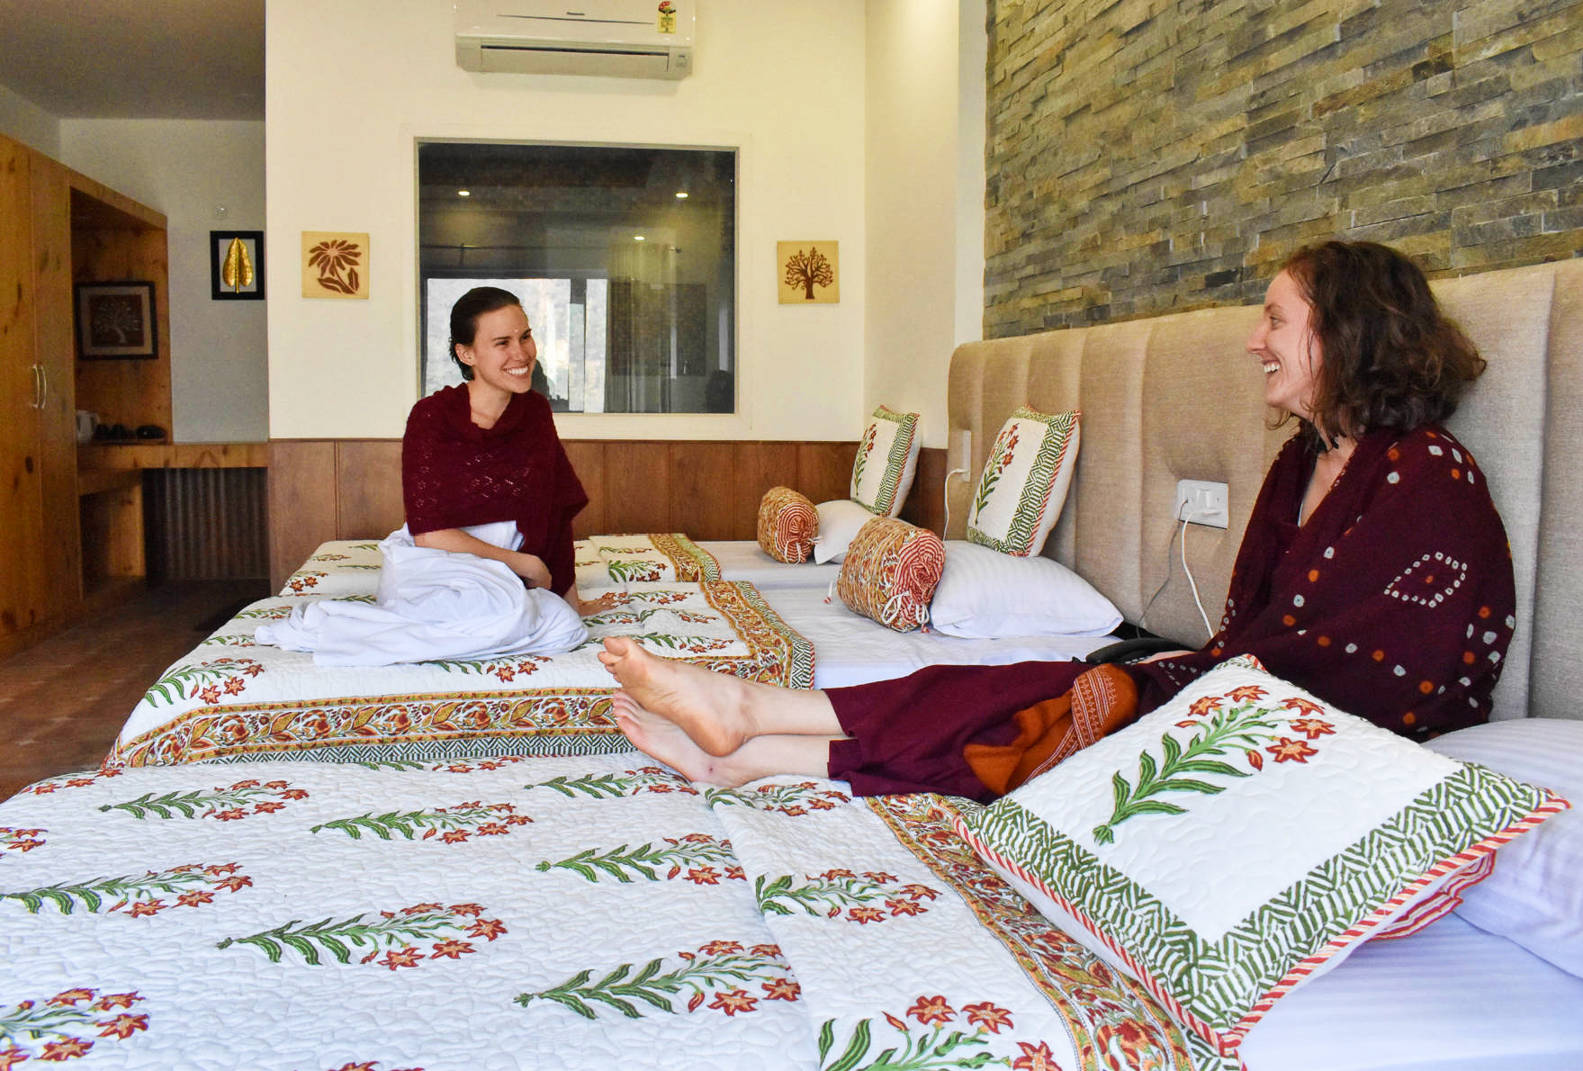 Veda5 Accommodation - Luxury Ayurveda Panchakarma Yoga - Wellness Retreat for Healing and Cure in Himalayas - Rishikesh India International